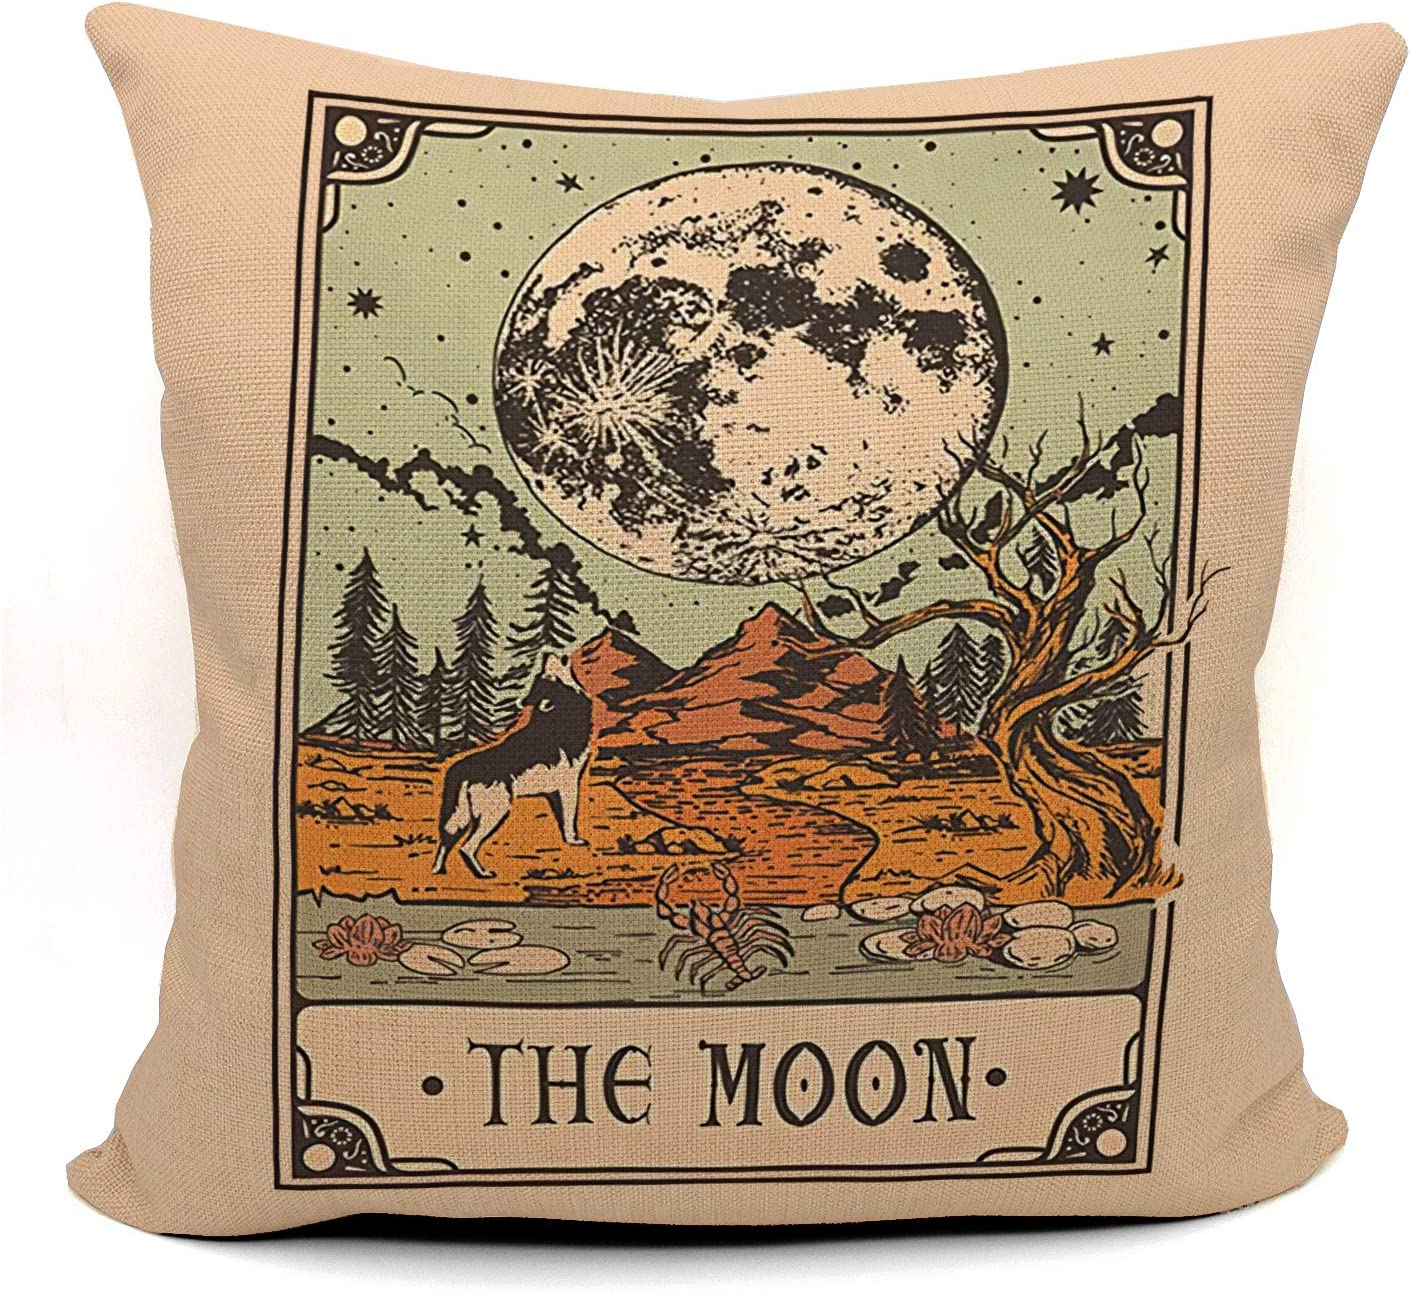 Tarot The Moon Throw Pillow Case, Gift for Daughter, Sister, Mom, Gift for Astrology Lovers, Tarot Lovers,Girl Room Decor, College Dorm Decor, 18 x 18 Inch Linen Cushion Cover for Sofa Couch Bed